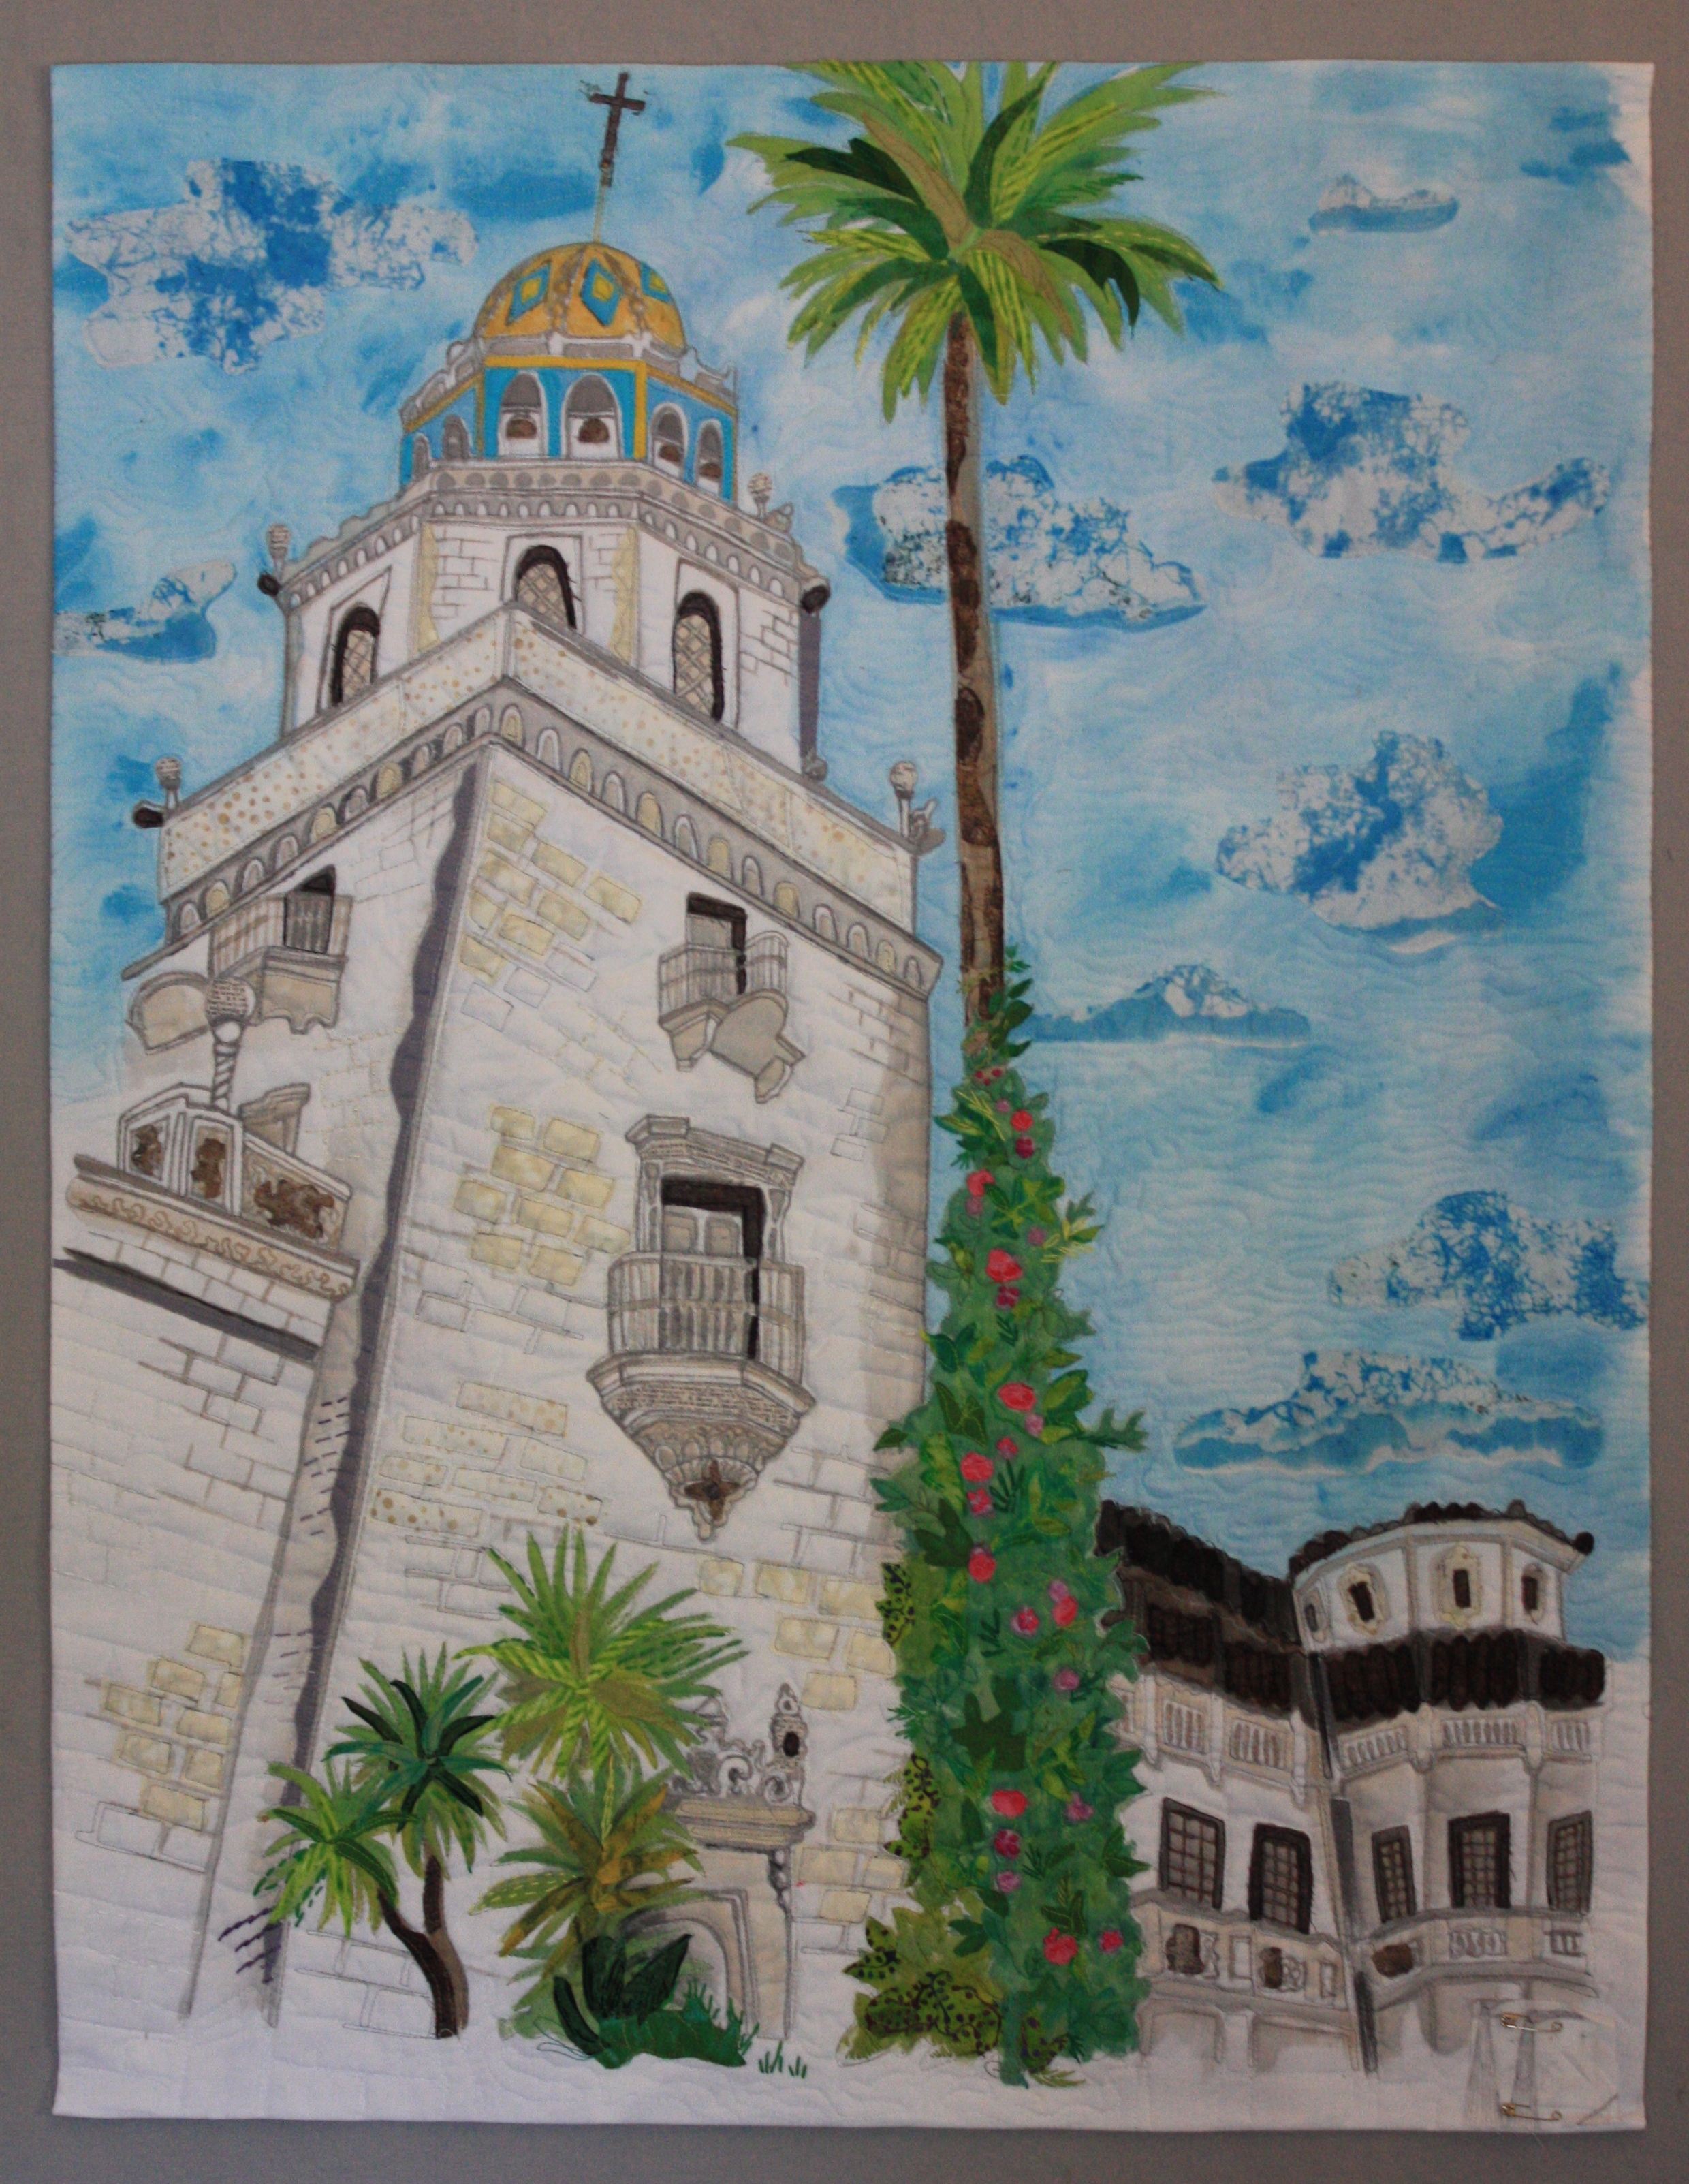 'Enchanted Hill' or Hearst Castle